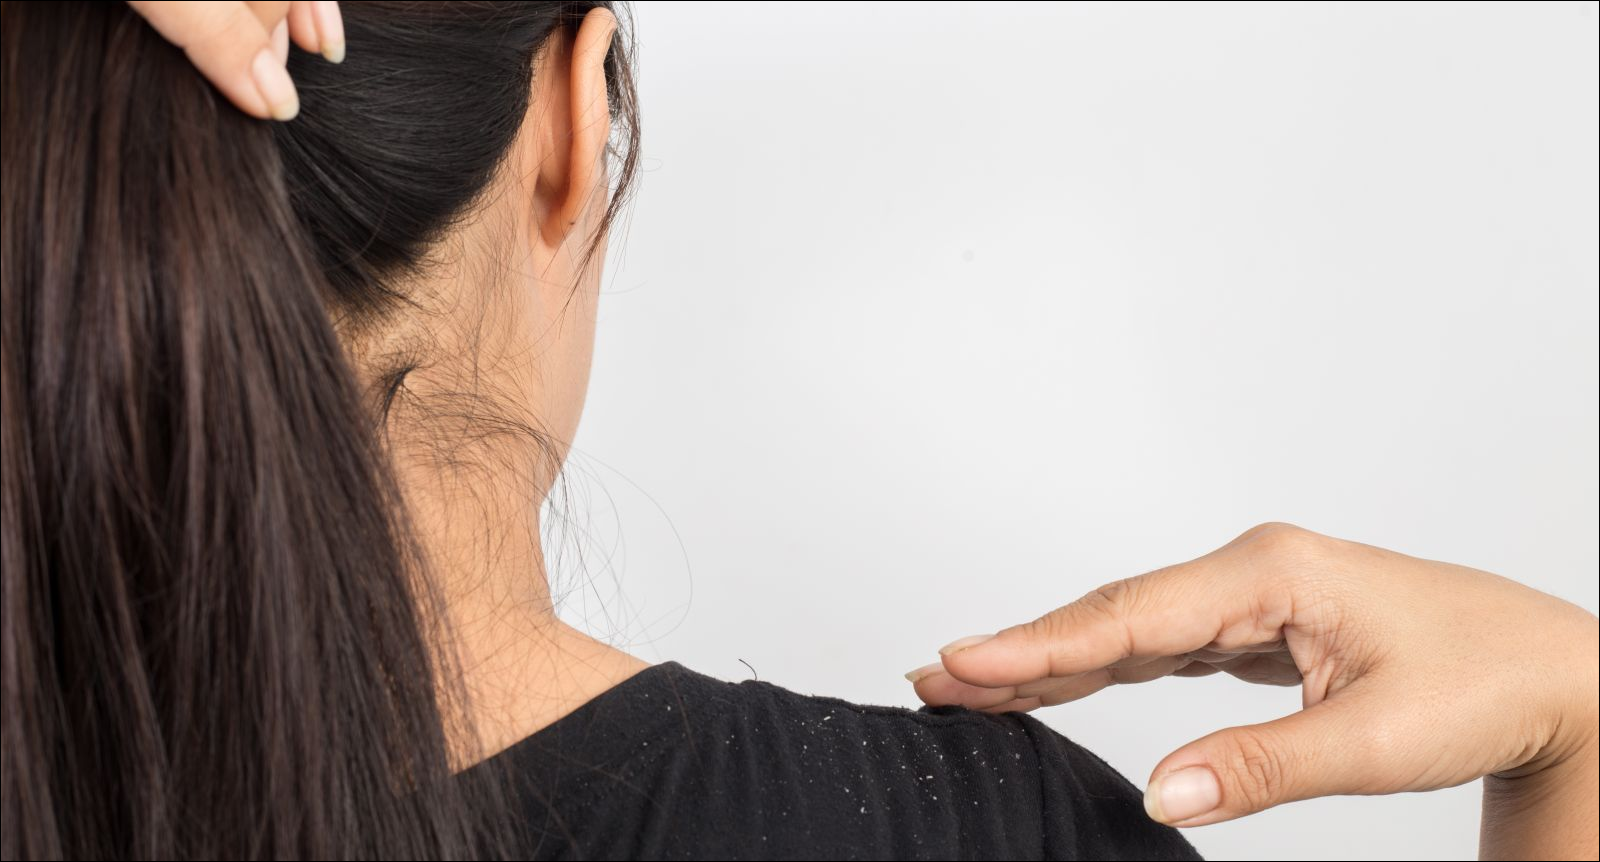 women with dandruff on her hair and shoulder